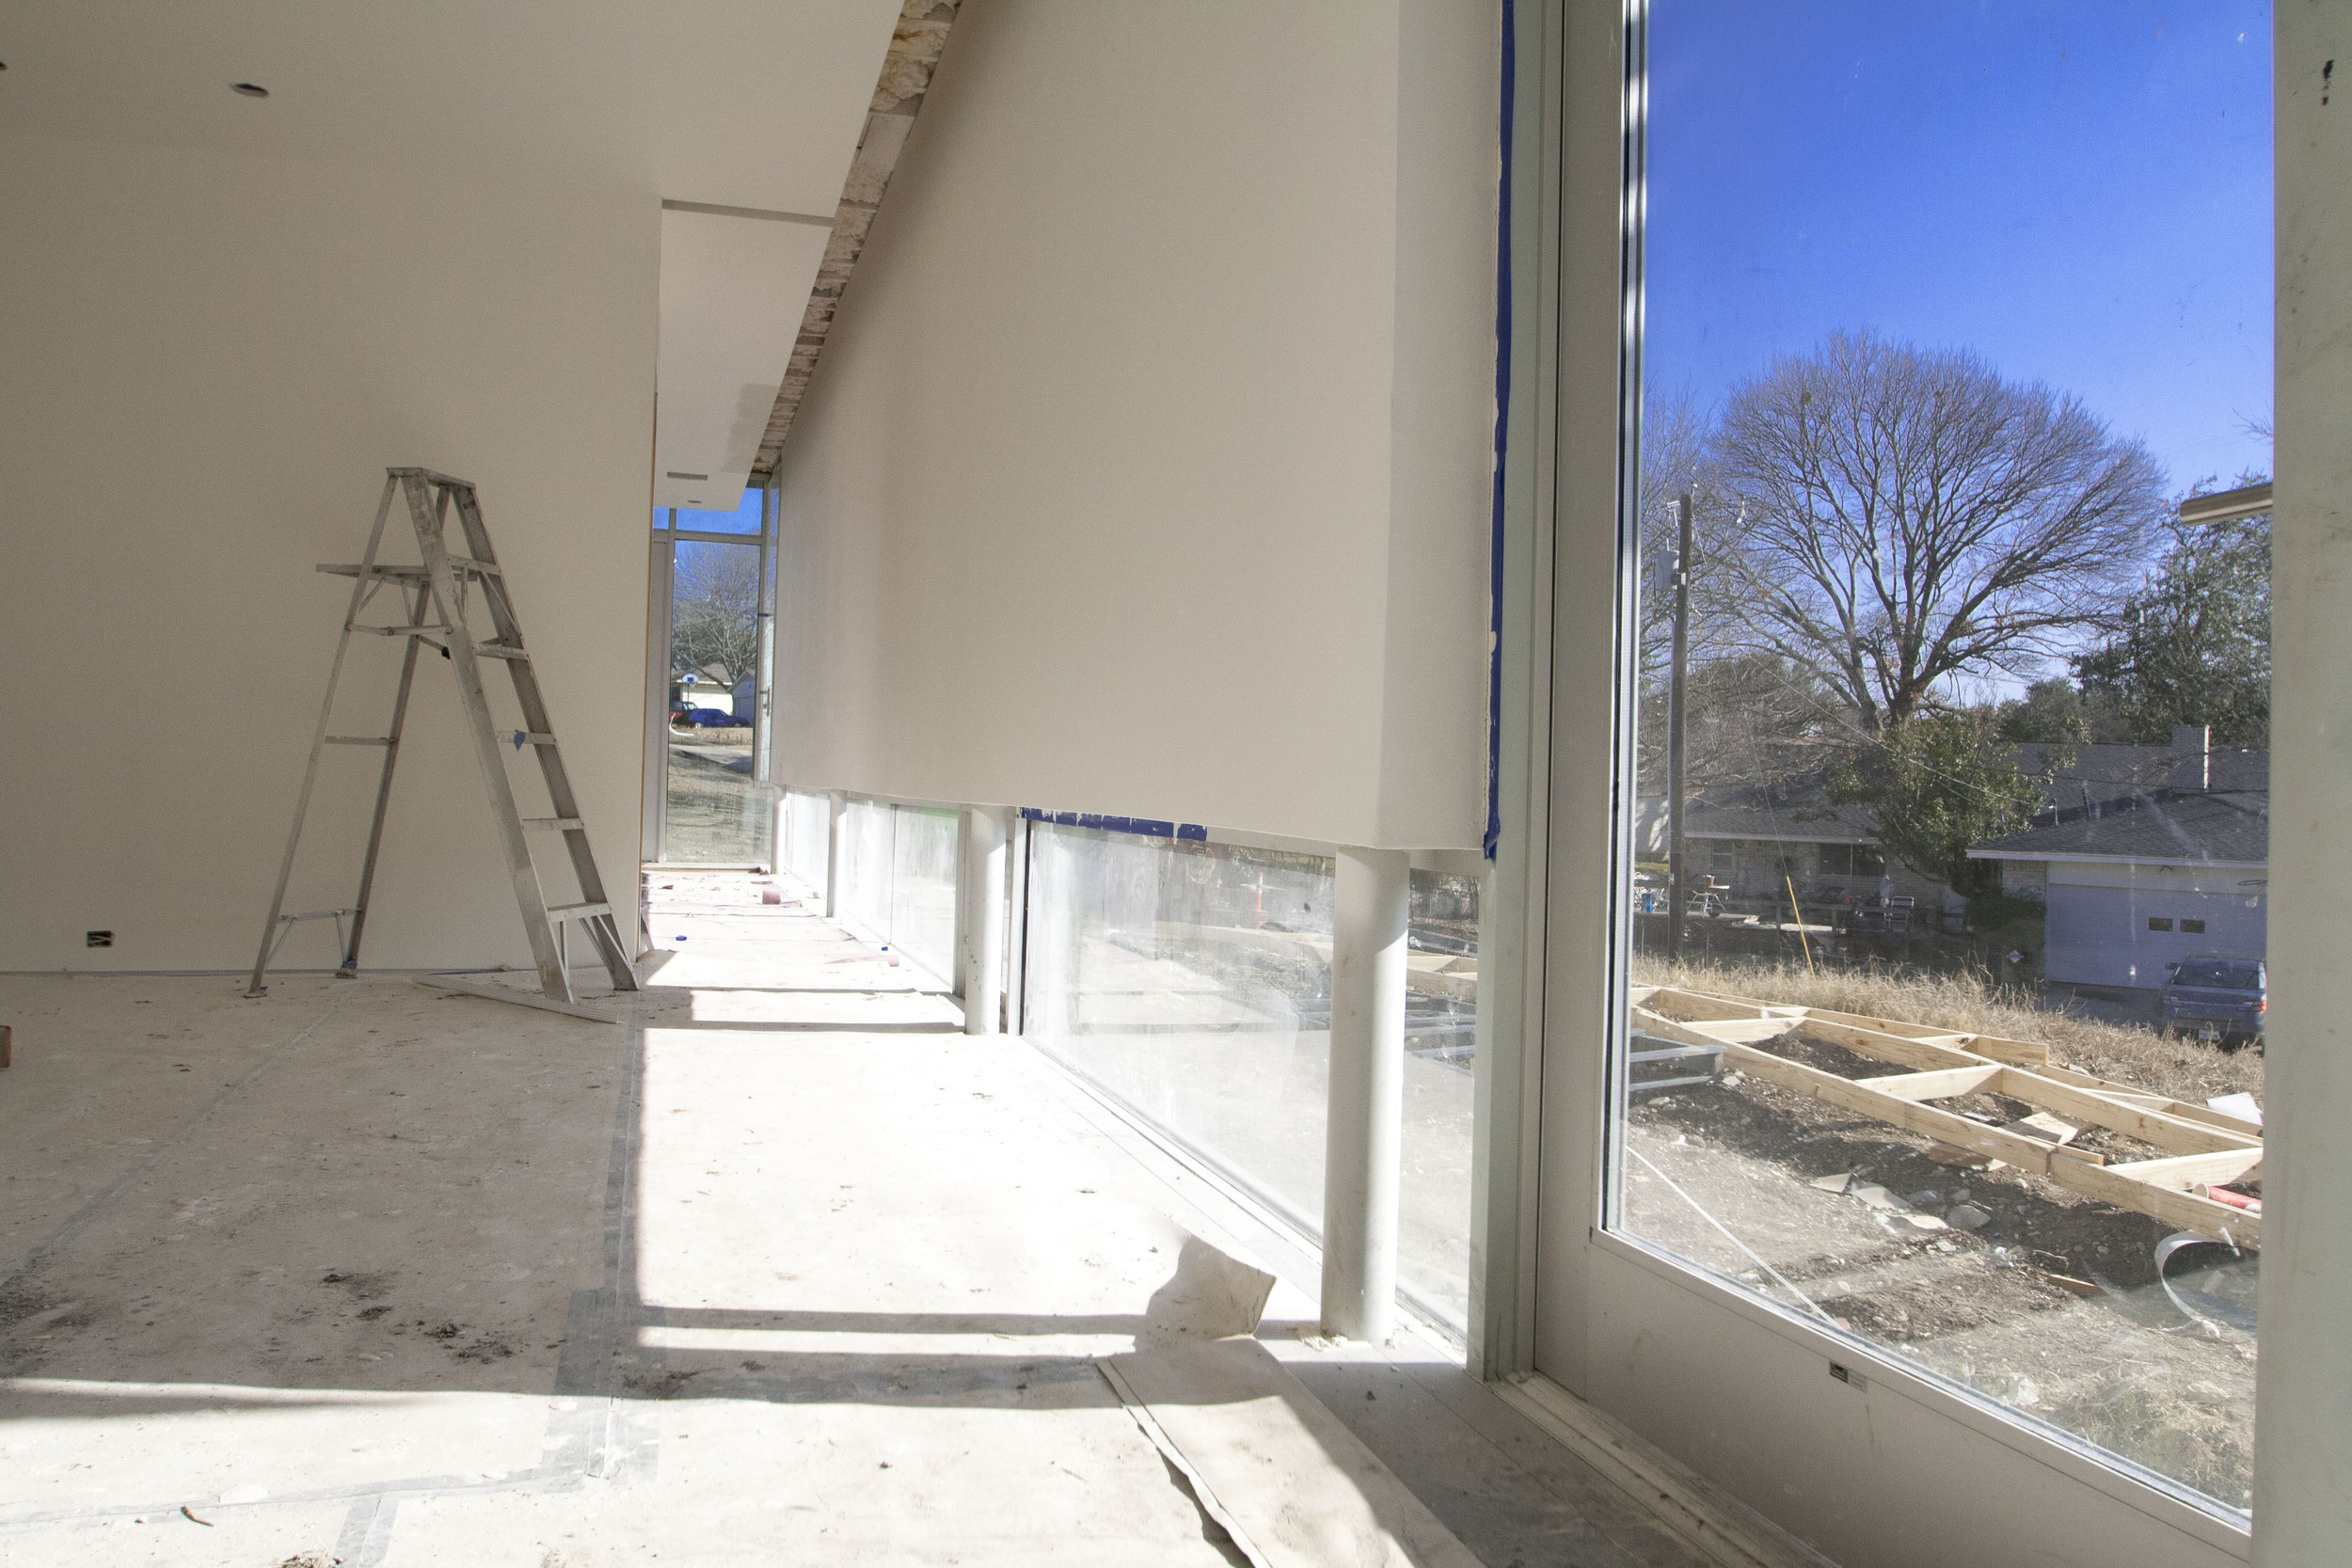 constructionphotos_Page_08.jpg